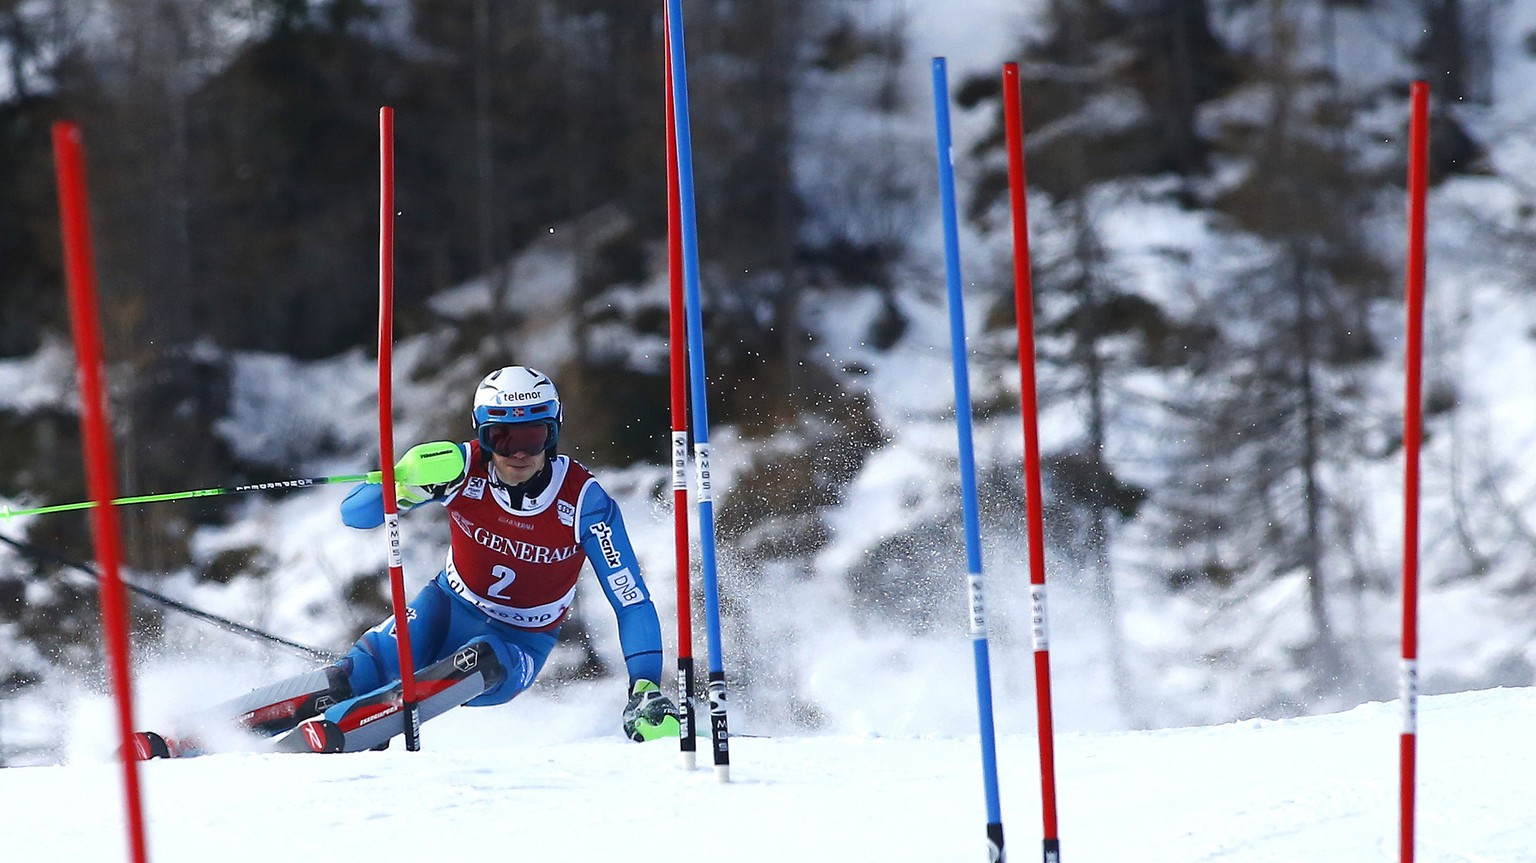 Norway's Henrik Kristoffersen competes during an alpine ski, men's World Cup slalom, in Val d'Isere, France, Sunday, Dec. 11, 2016. (AP Photo/Giovanni Auletta)